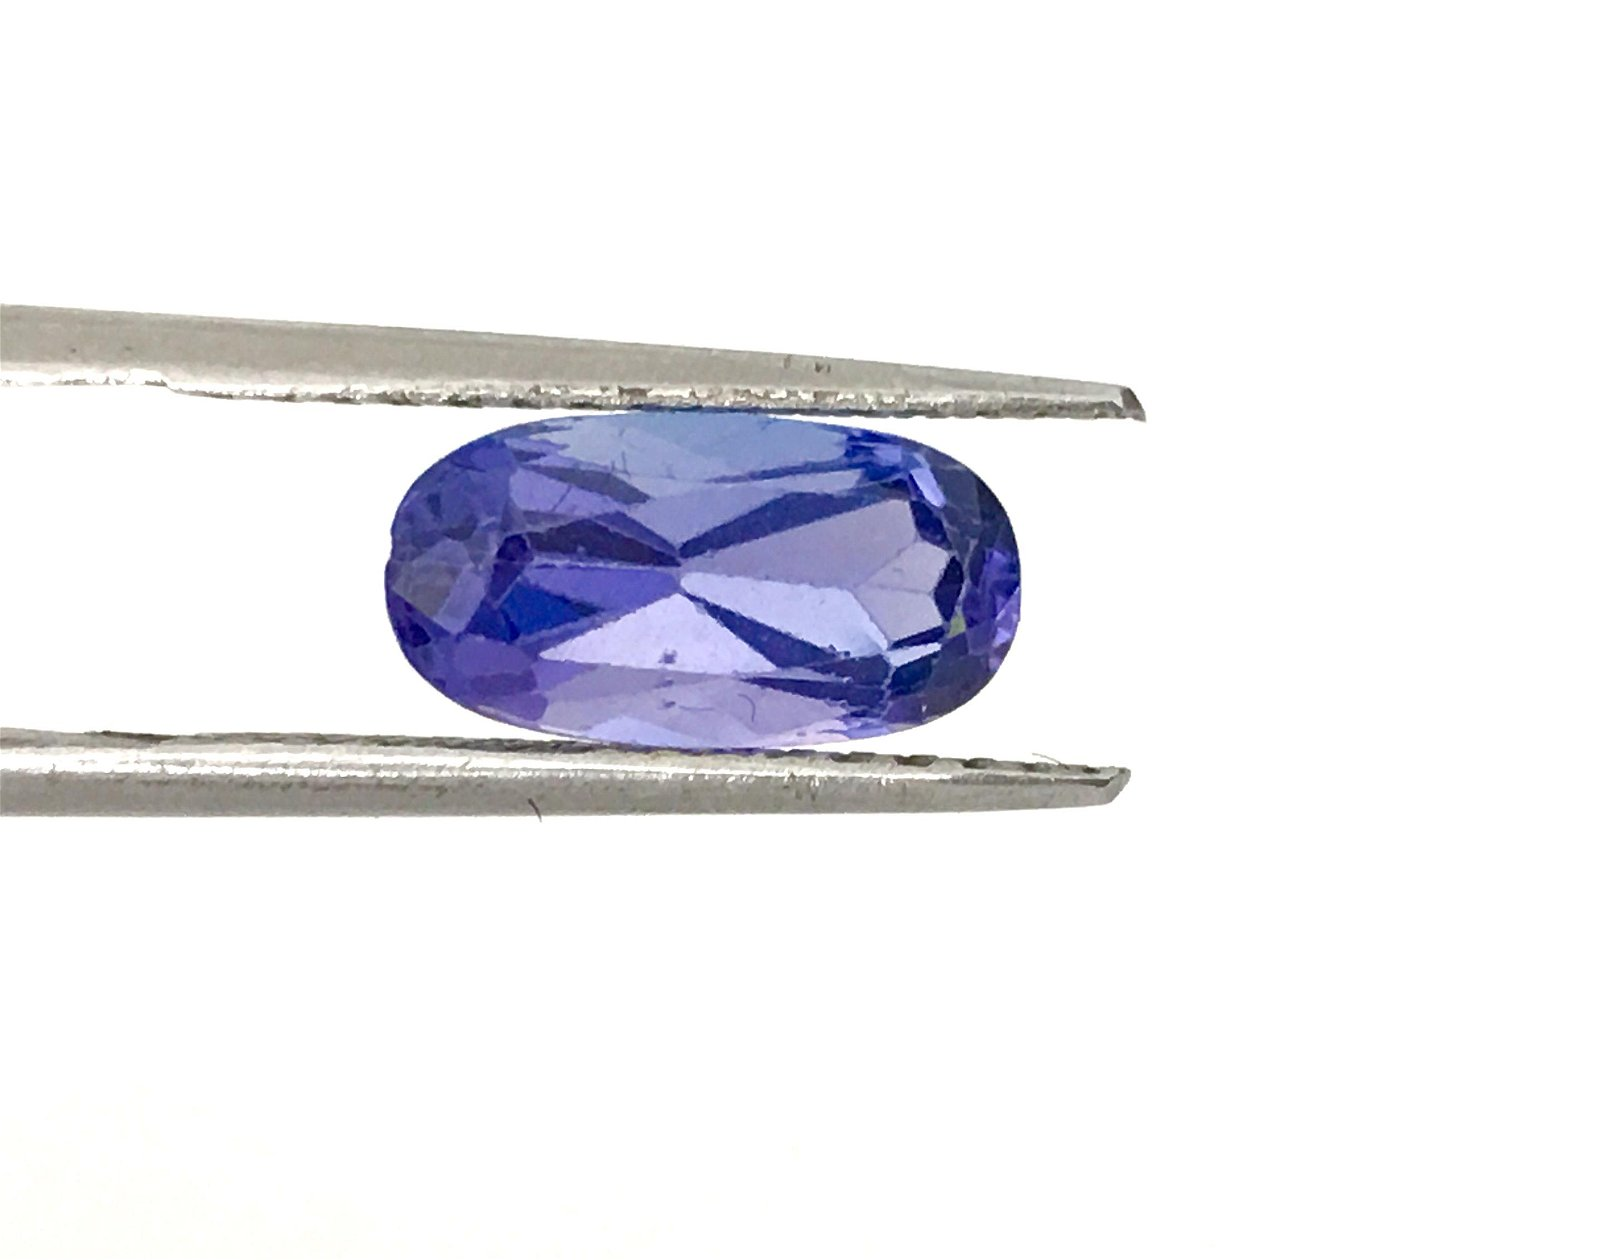 Details about  /Natural Loose Gemstone 5 to 7 Cts Each 20 Piece Lot Blue Tanzanite